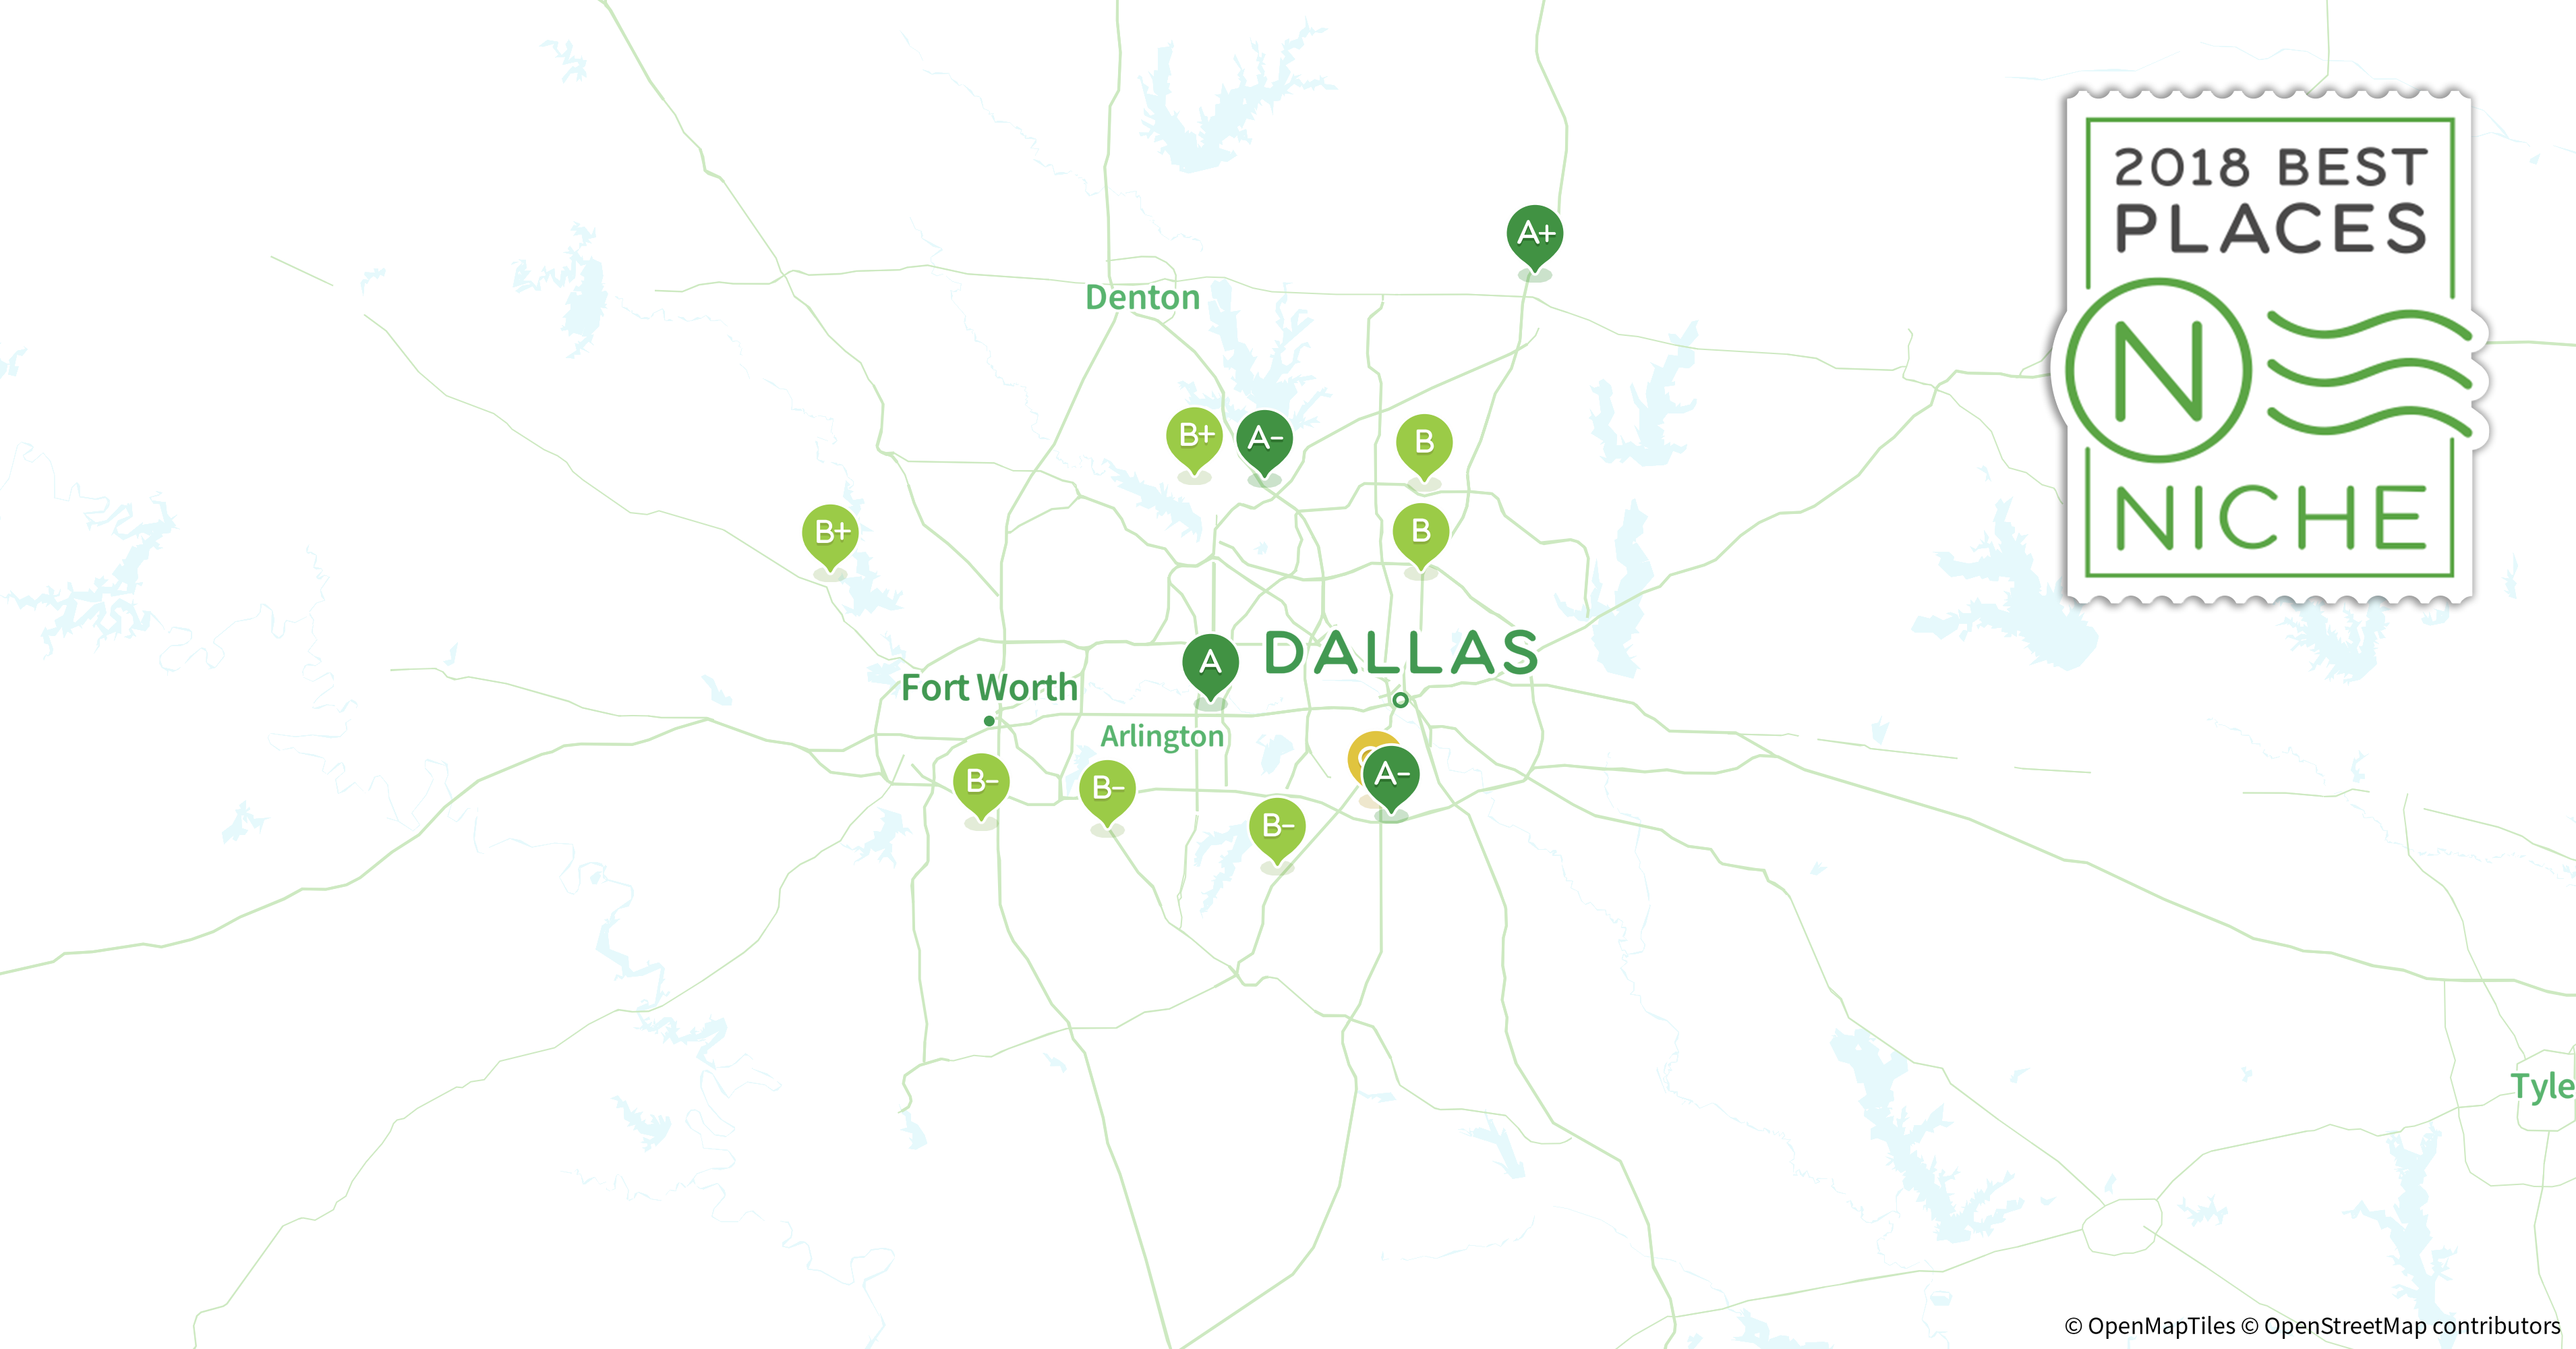 2018 Best Dallas-Fort Worth Area Suburbs to Live - Niche